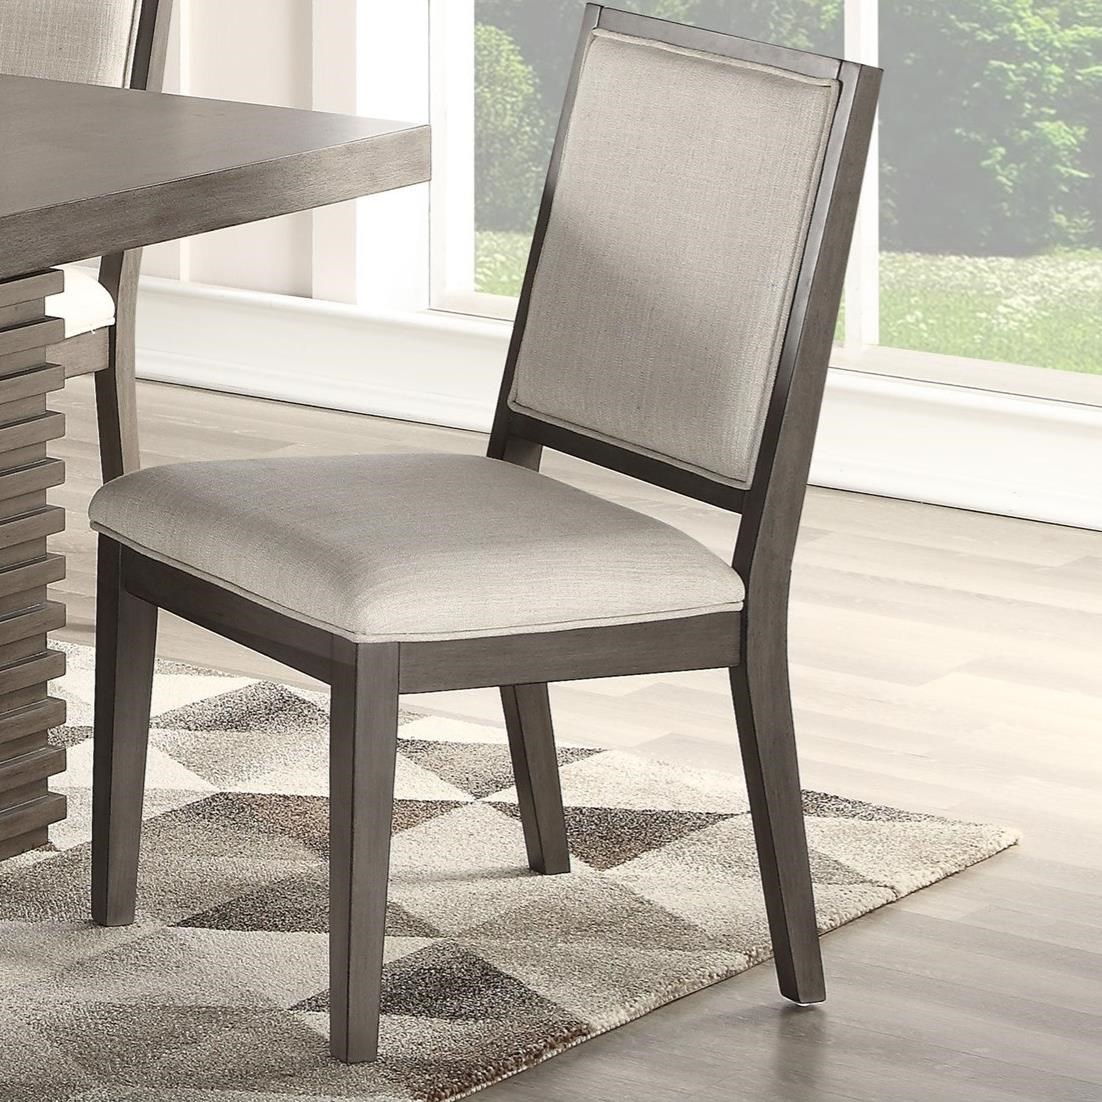 Mila Side Chair  by Vendor 3985 at Becker Furniture